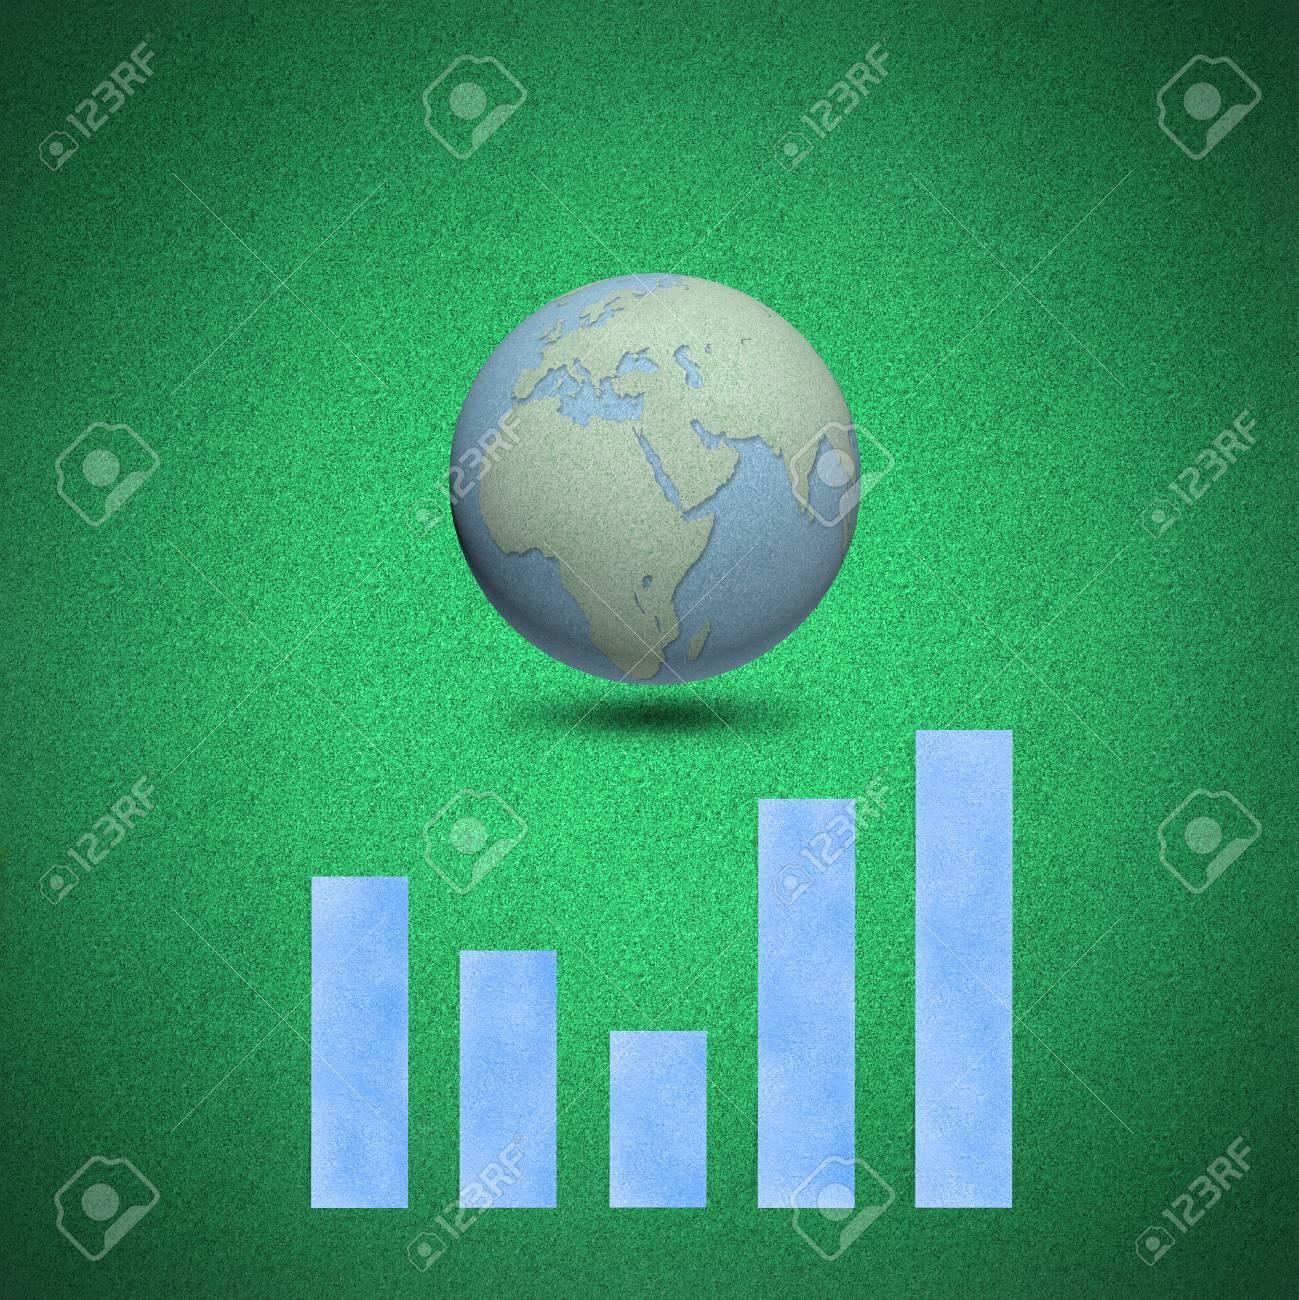 Graph chart globes concept on green background by cork board Stock Photo - 13798829